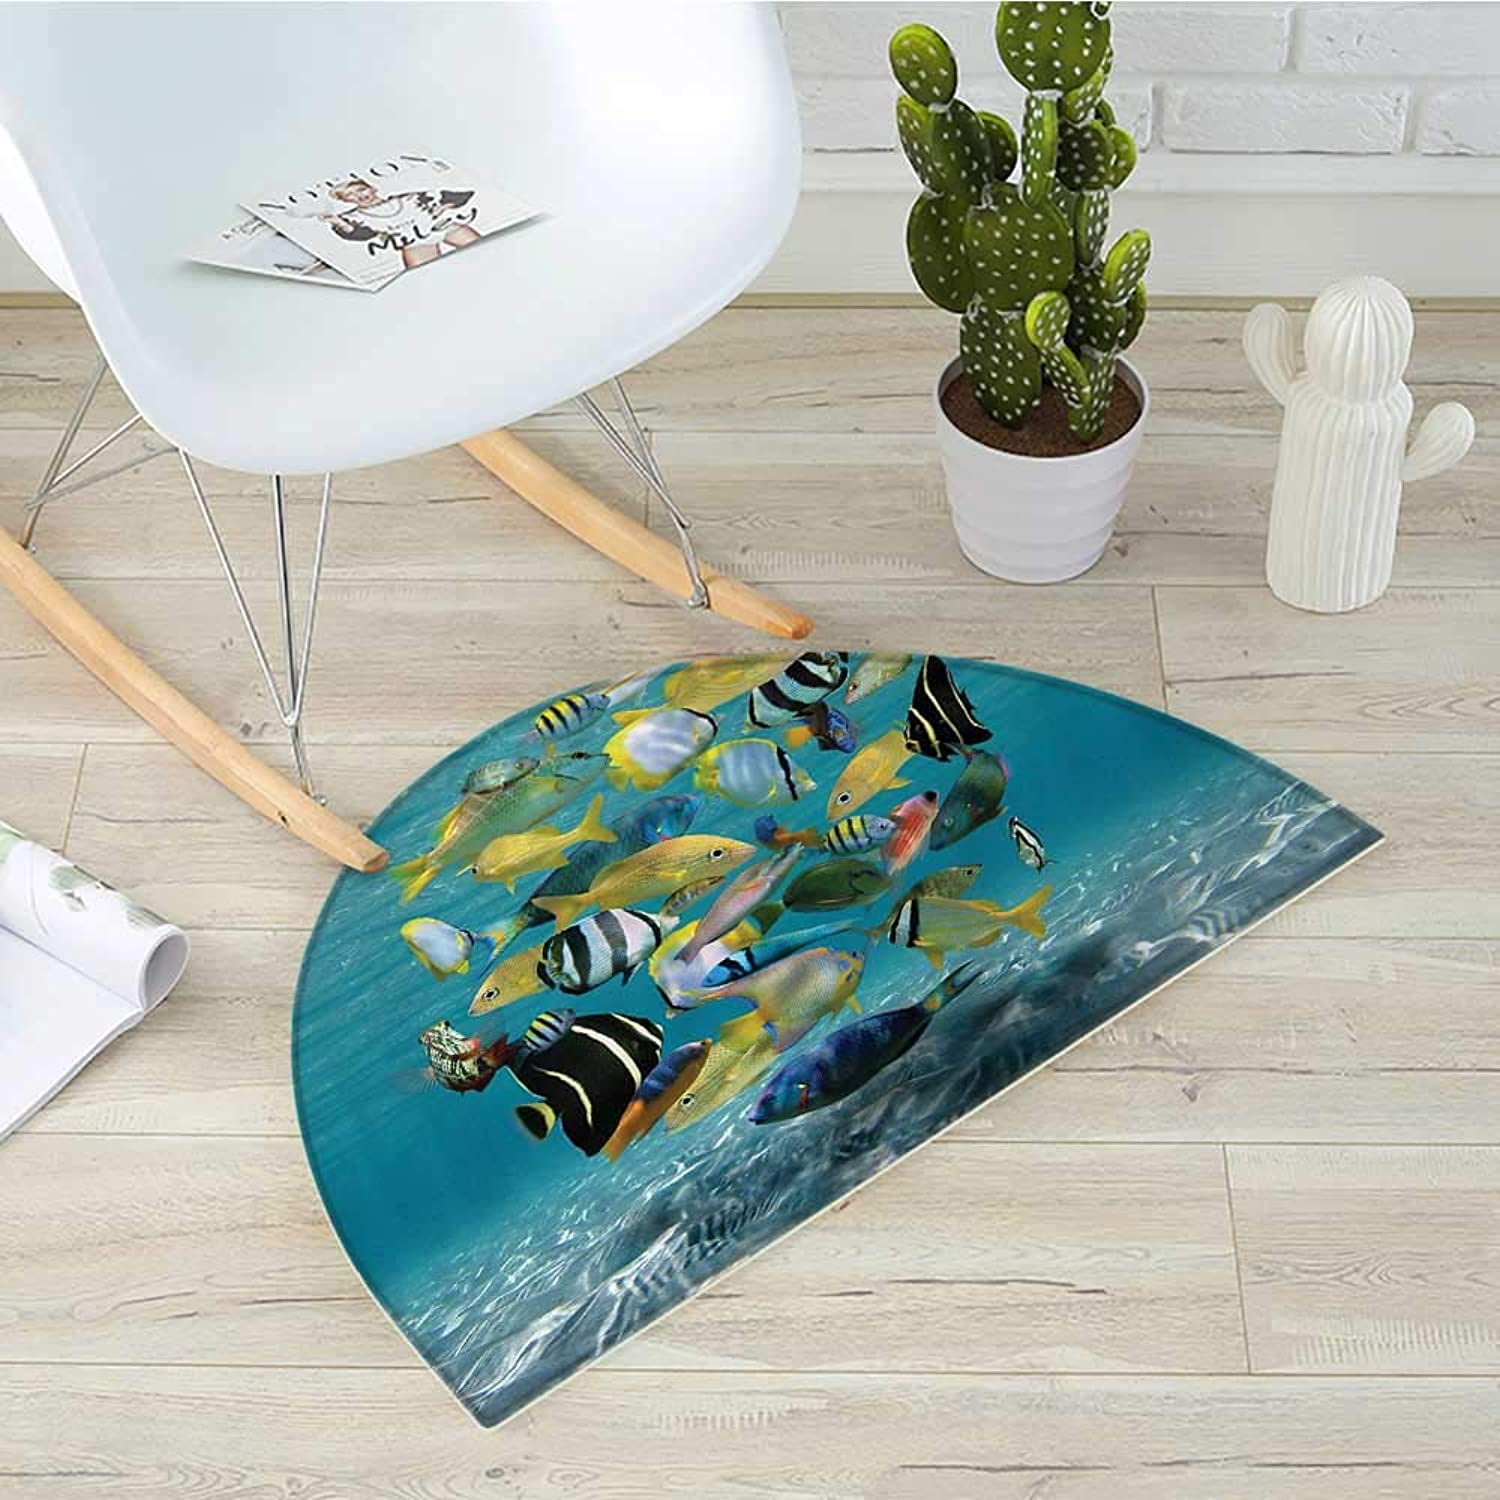 Fish Semicircular CushionShoal of Fish Forming a Circle Above a Sandy Seabed in Clear Water Caribbean Ocean Entry Door Mat H 35.4  xD 53.1  Multicolor